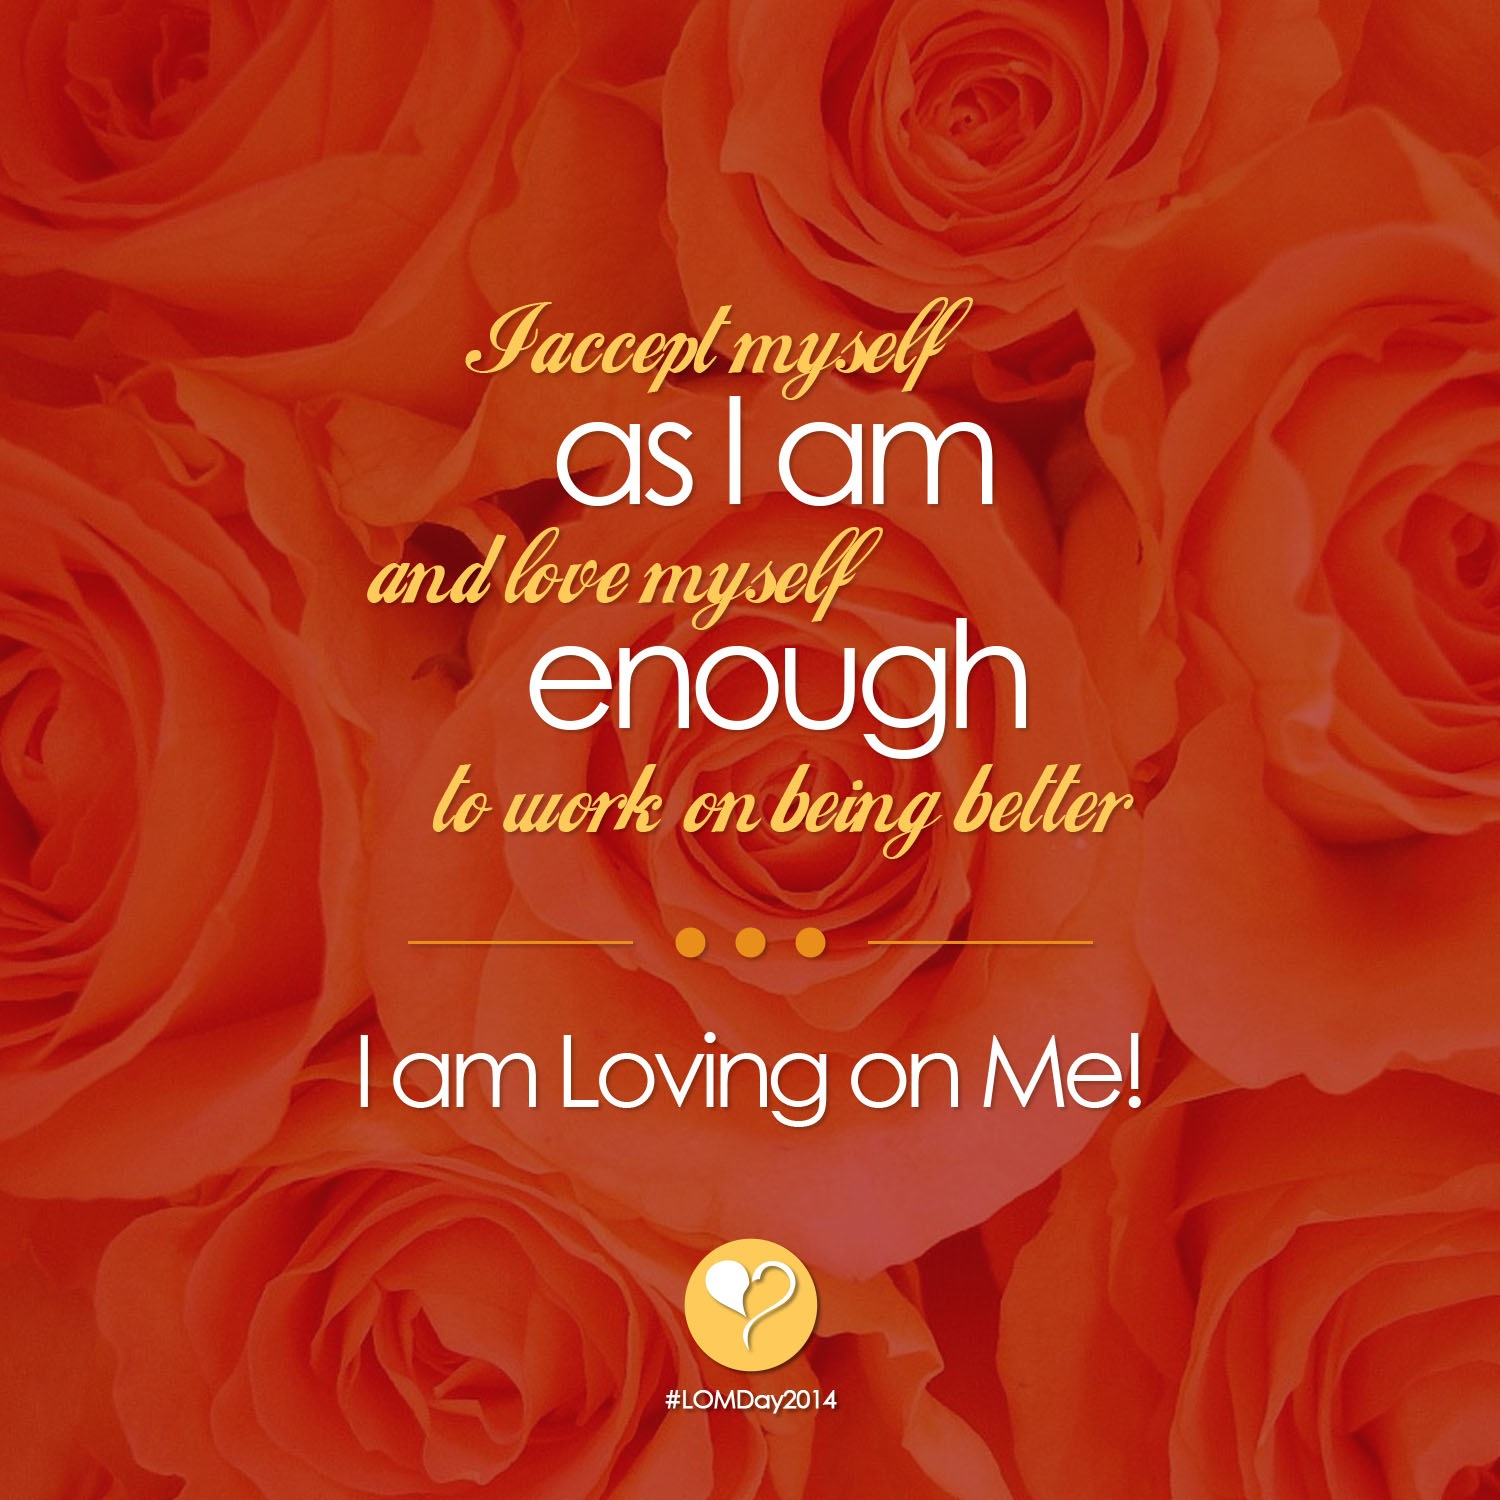 Accepting Me As I Am...